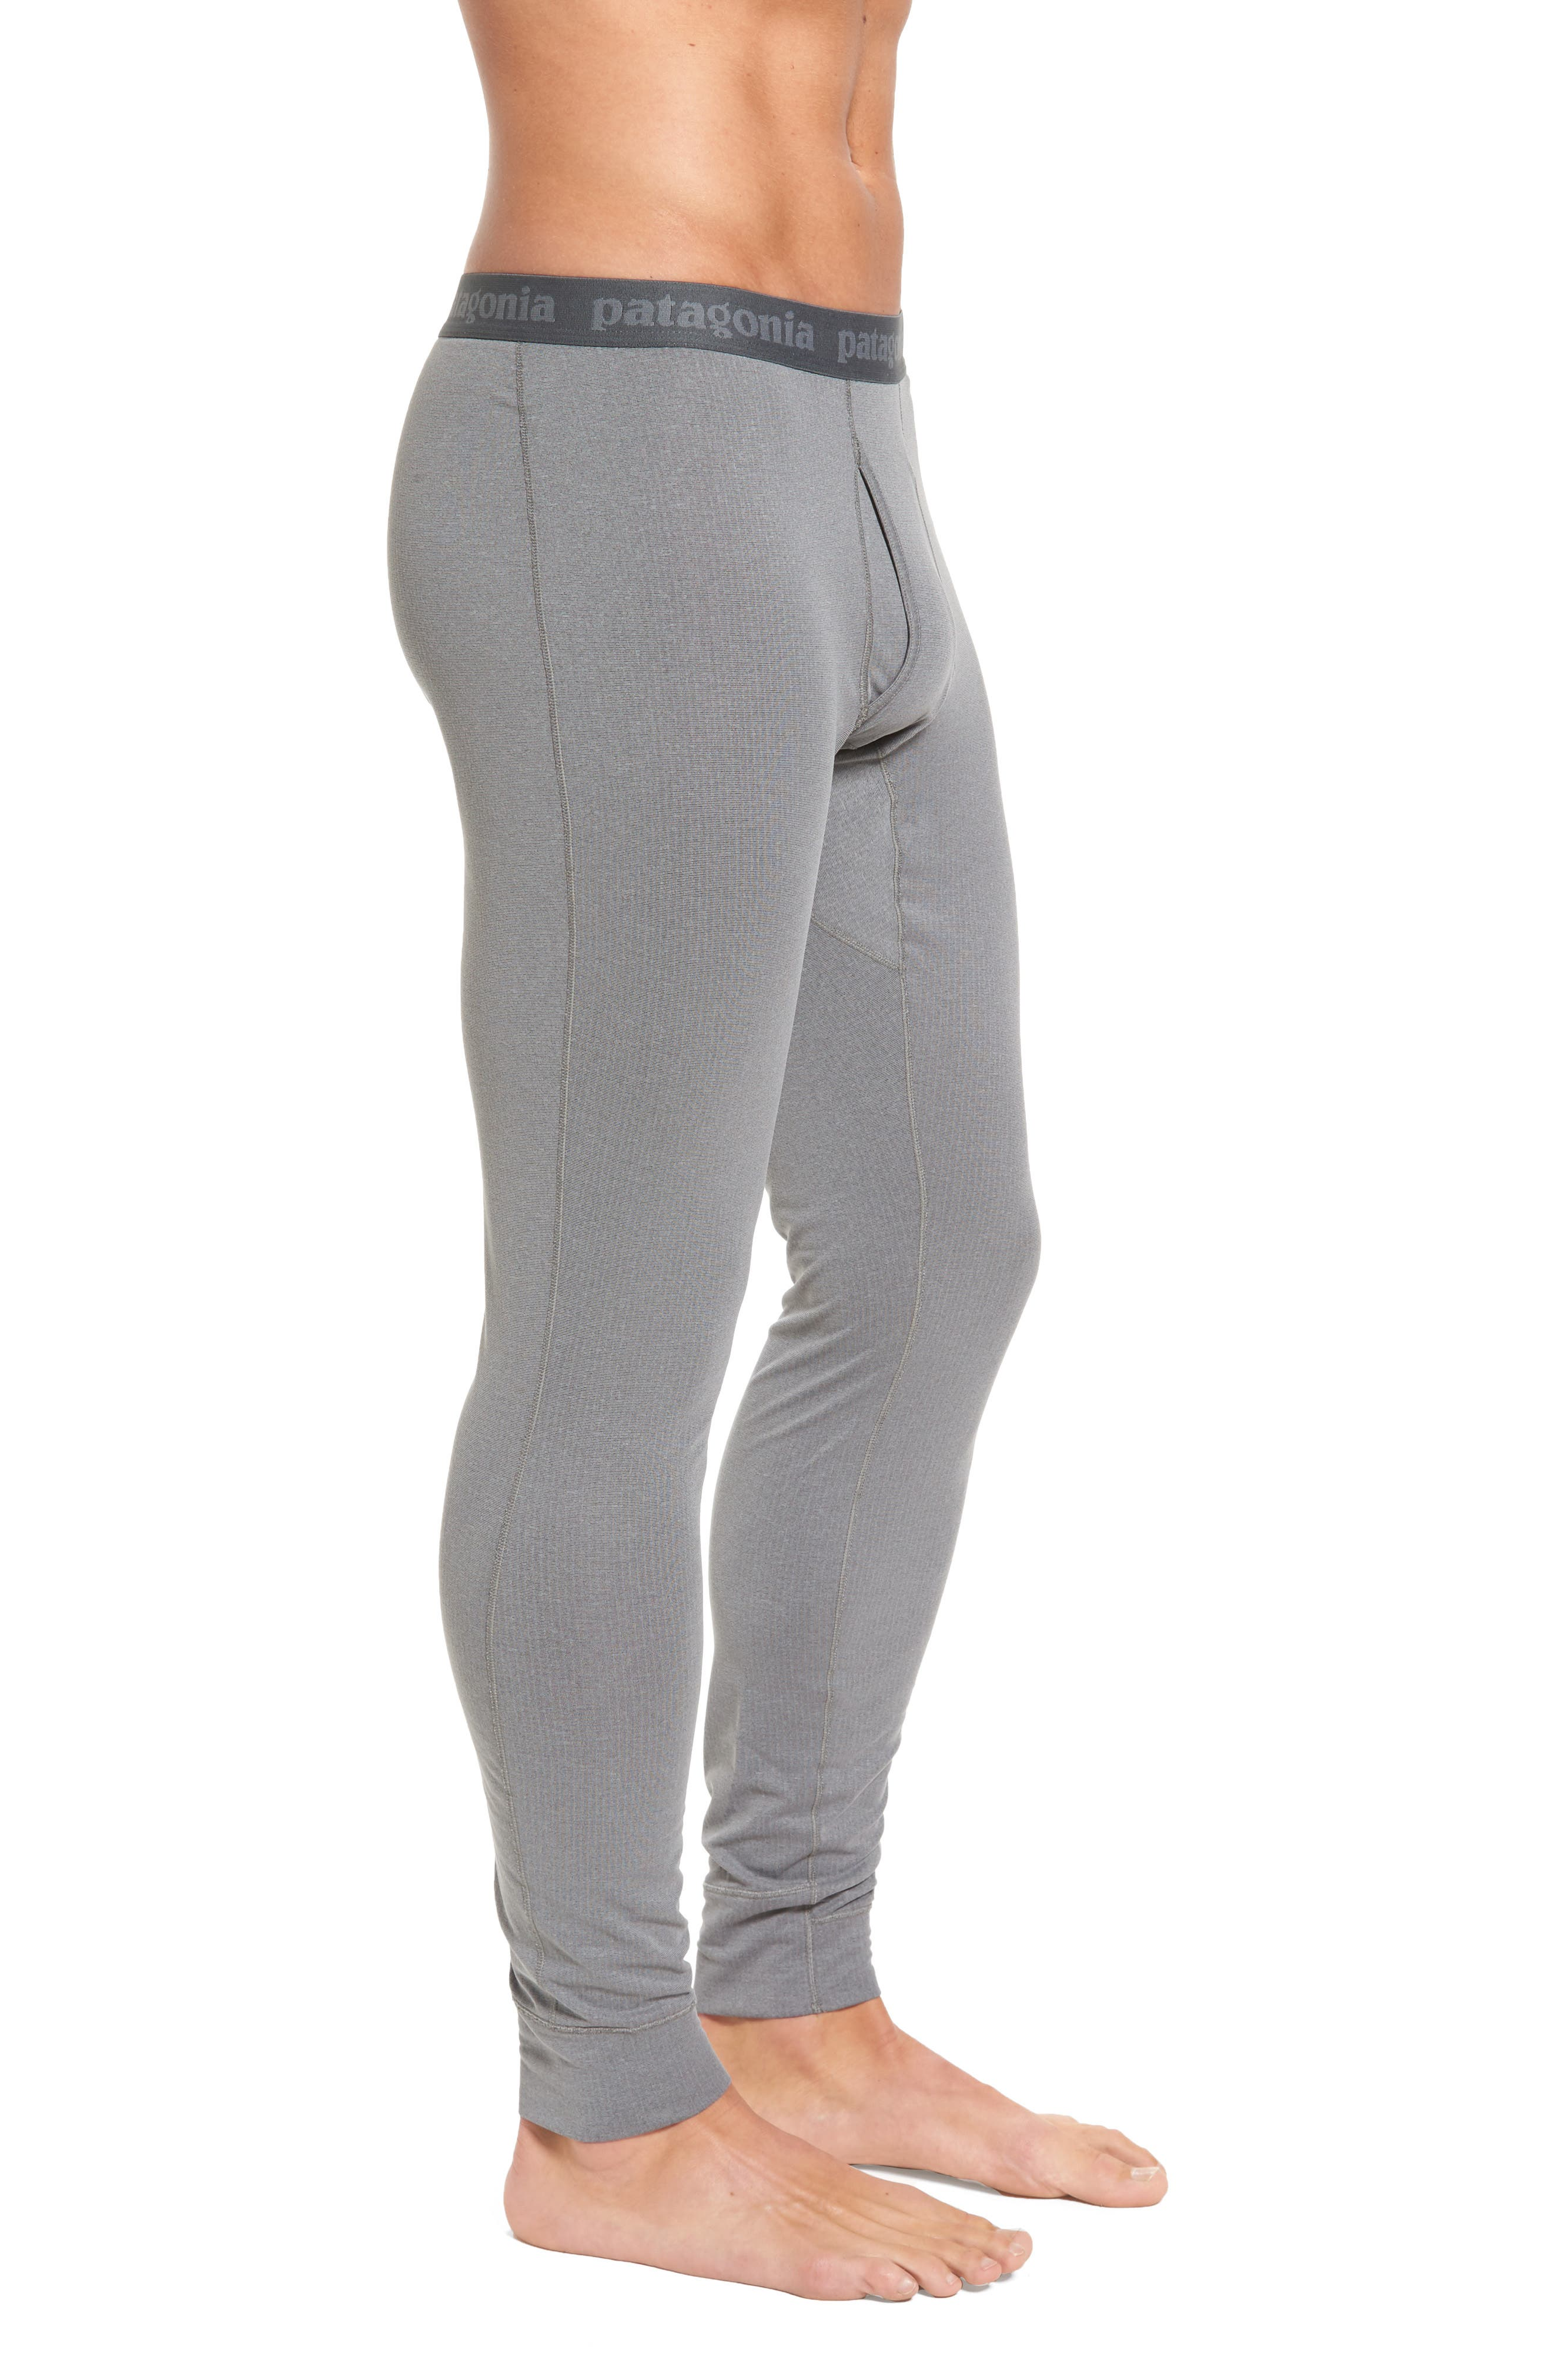 Capilene Midweight Base Layer Tights,                             Alternate thumbnail 6, color,